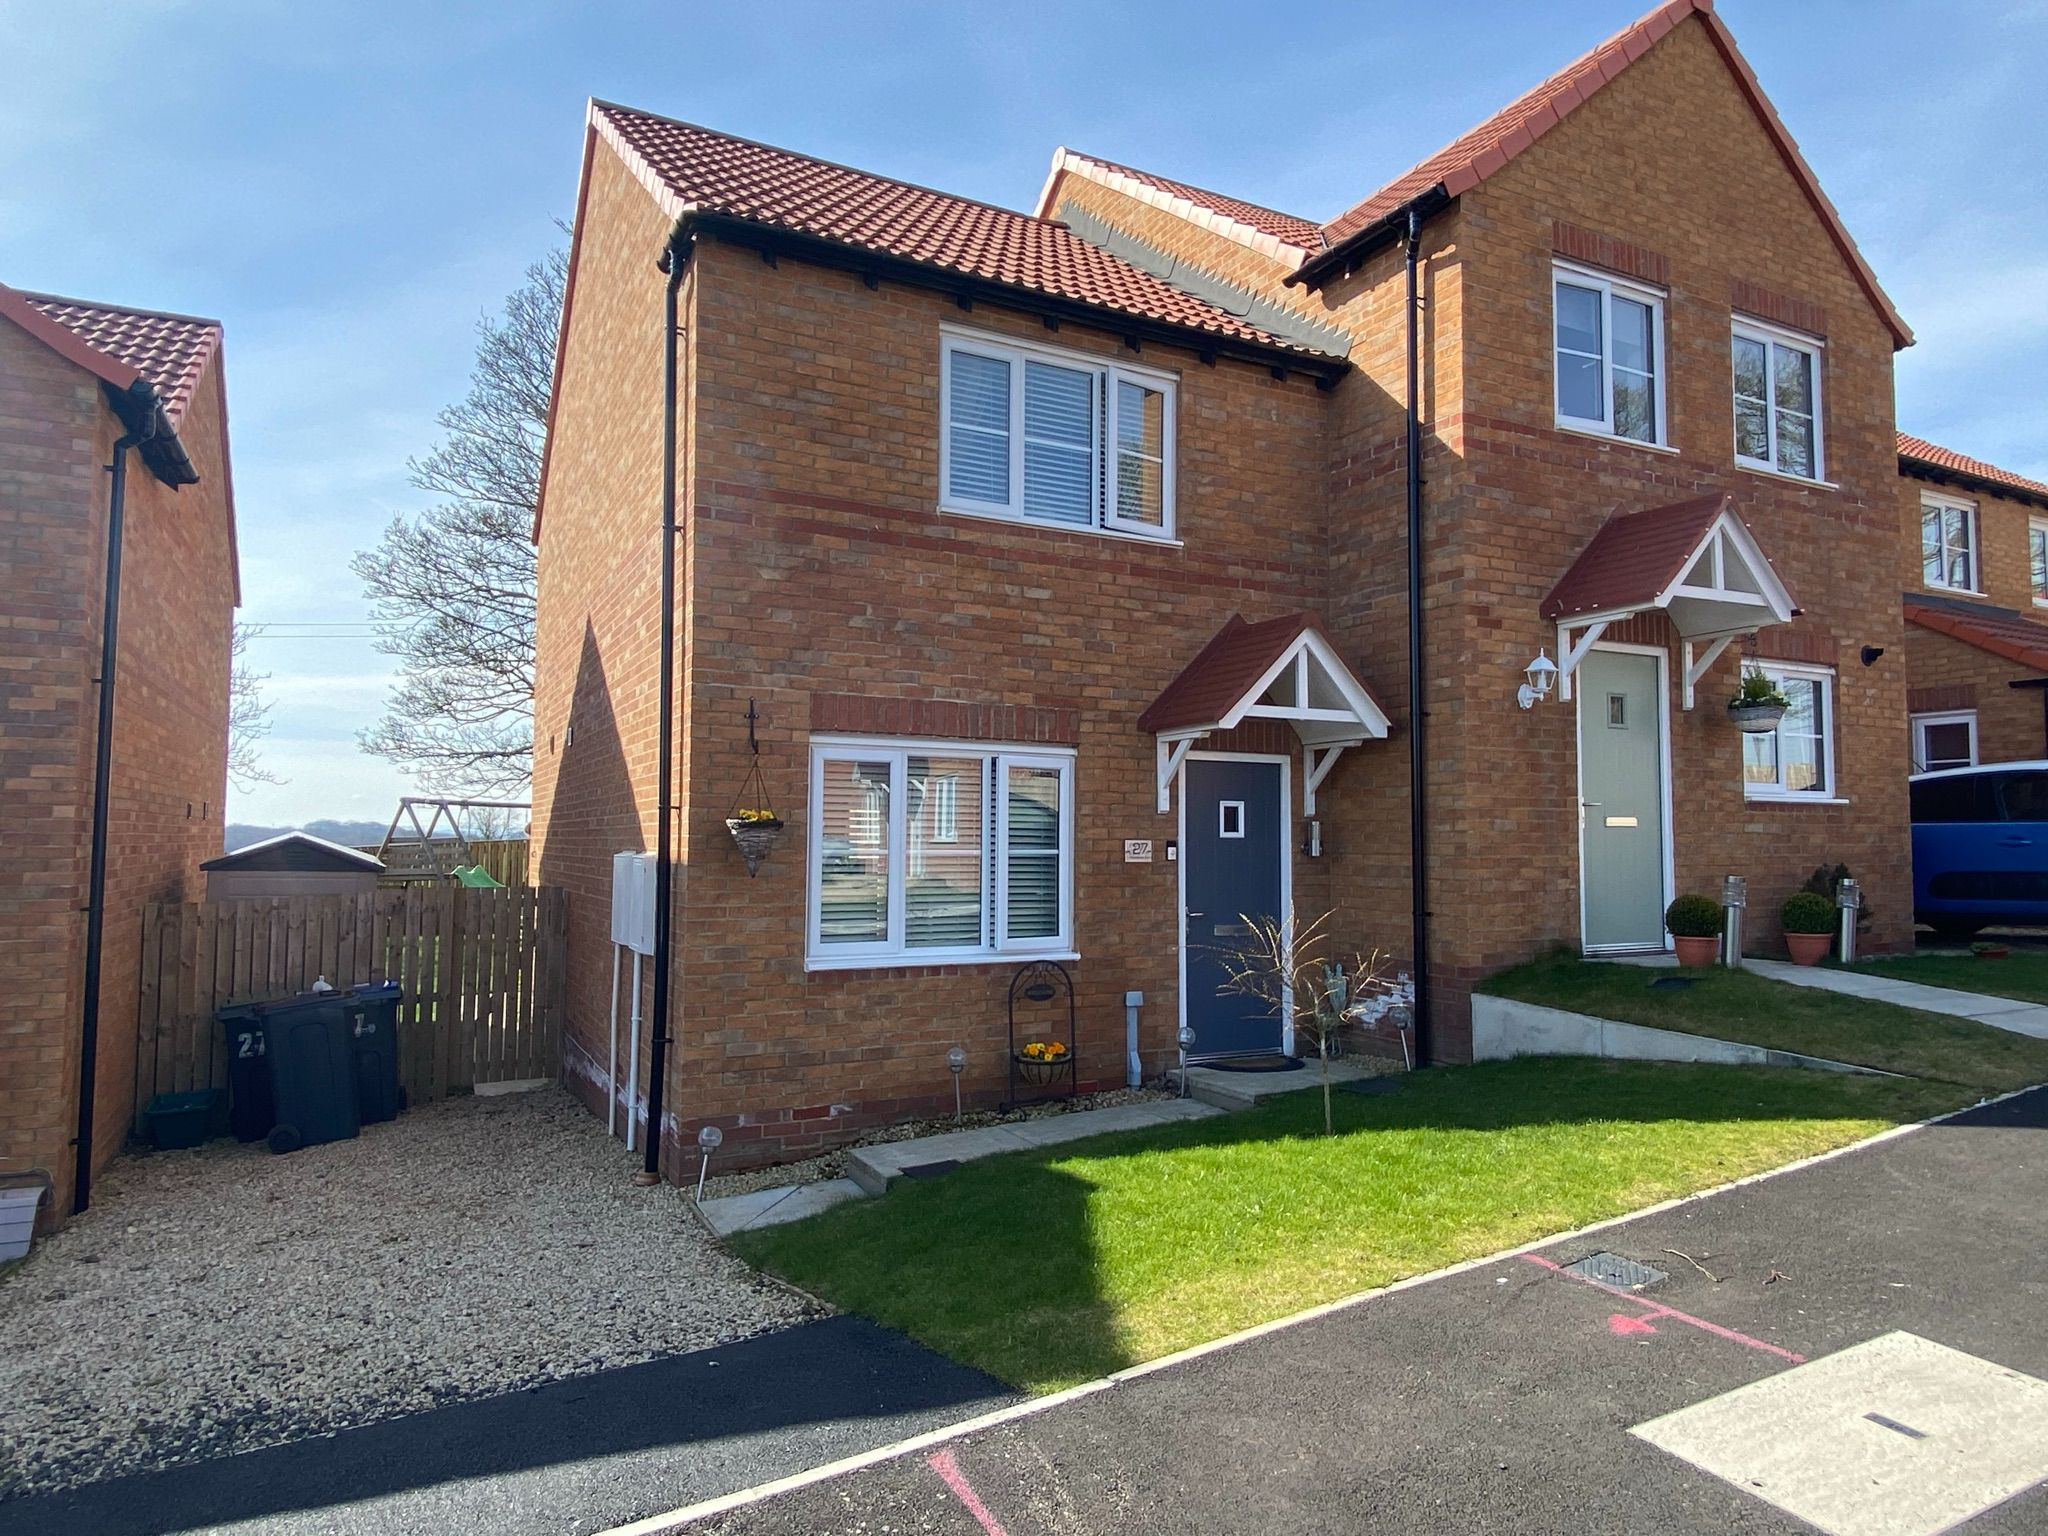 2 bedroom semi-detached house For Sale in Crook - Photograph 1.